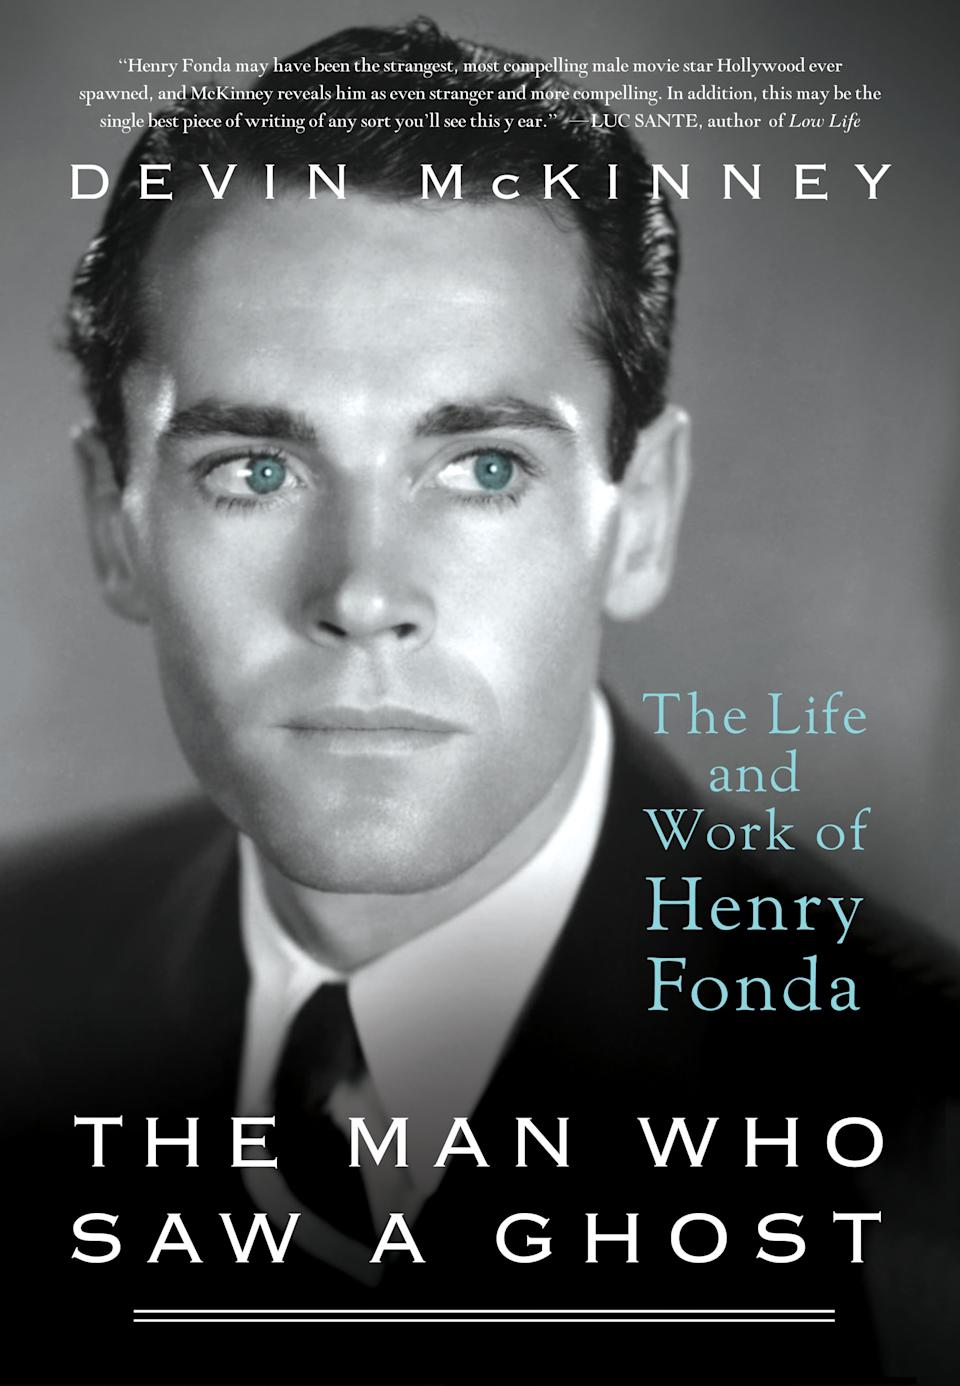 "This book cover image released by St. Martin's Press shows ""The Man Who Saw a Ghost: The Life and Work of Henry Fonda,"" by Devin McKinney)"